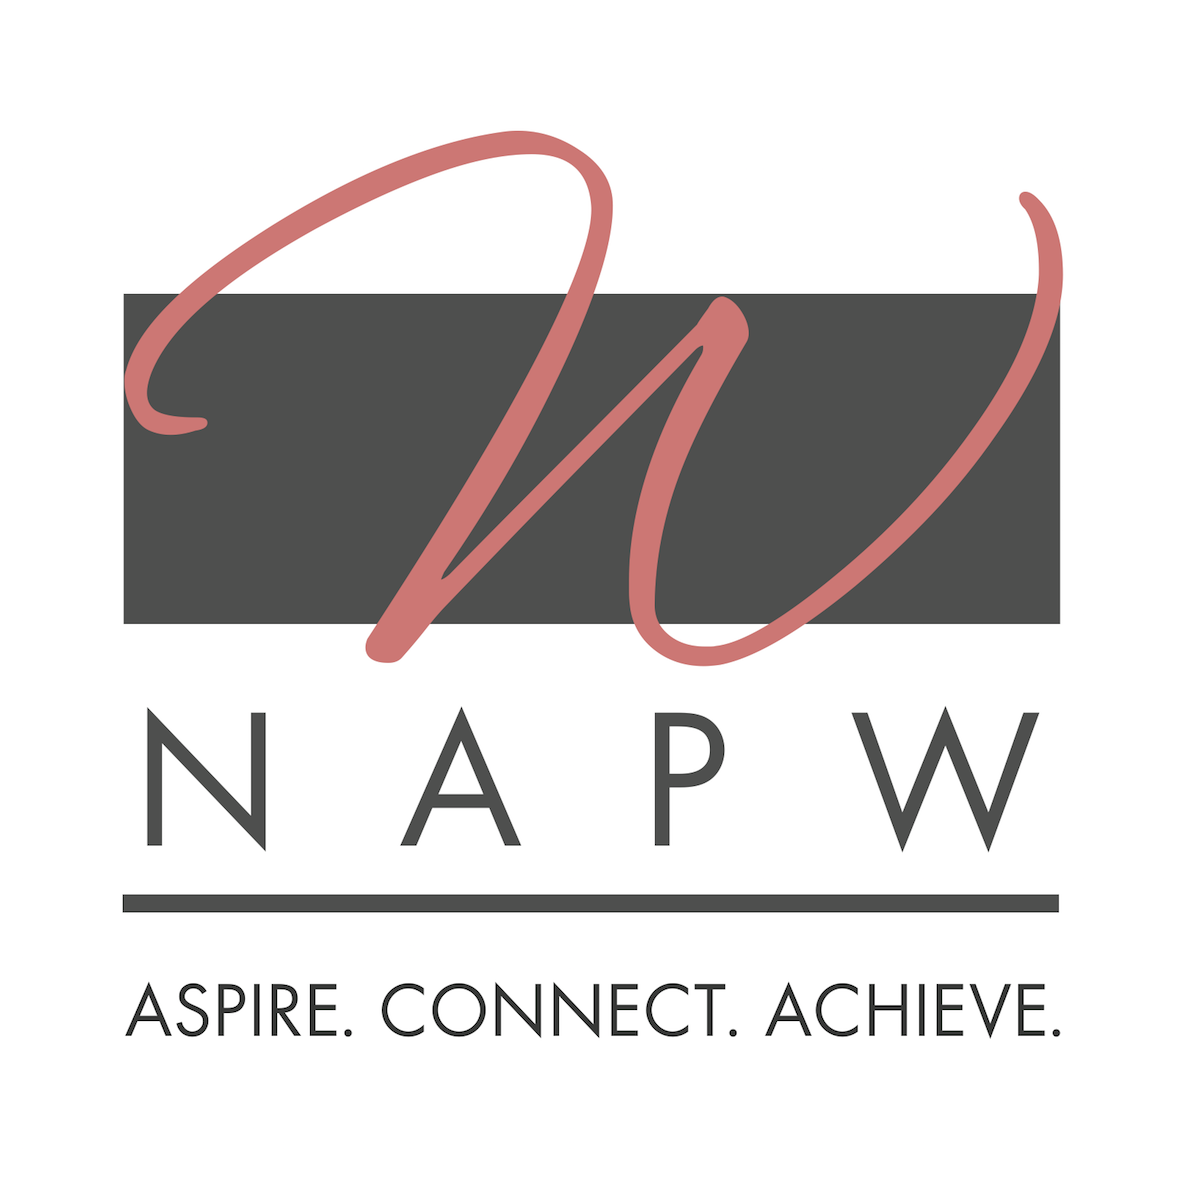 the national association of professional women aspire the national association of professional women aspire connect achieve